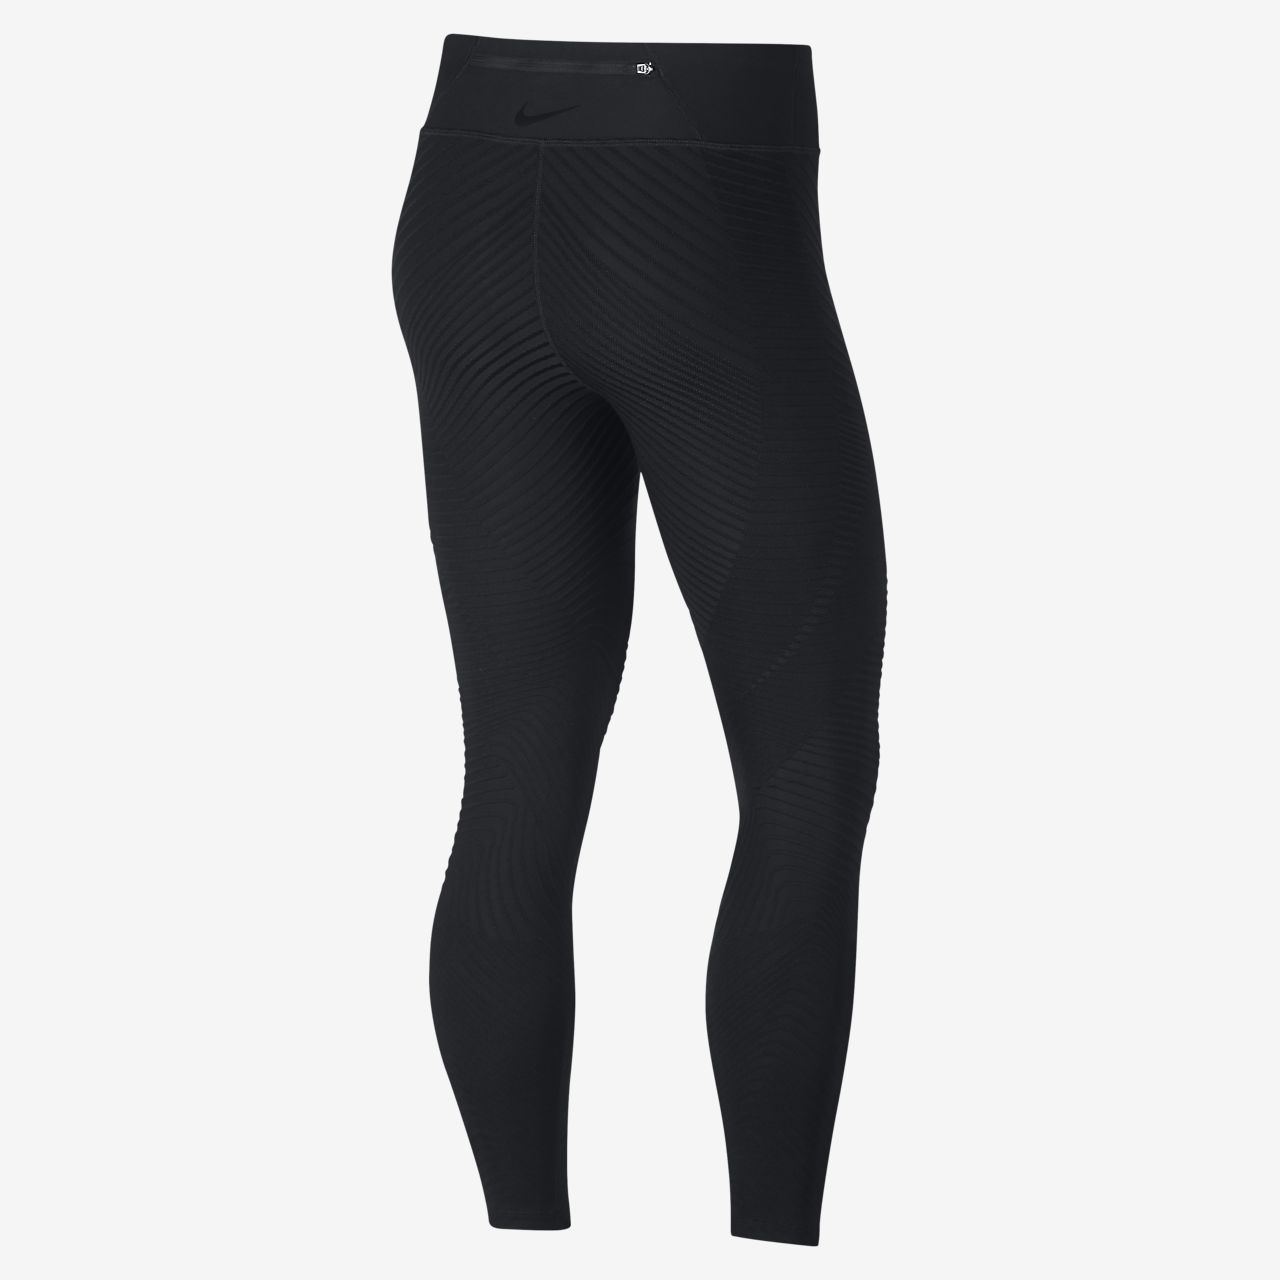 9efa7969fe03 Nike Epic Lux Women s Texture Mid-Rise Running Tights. Nike.com IE